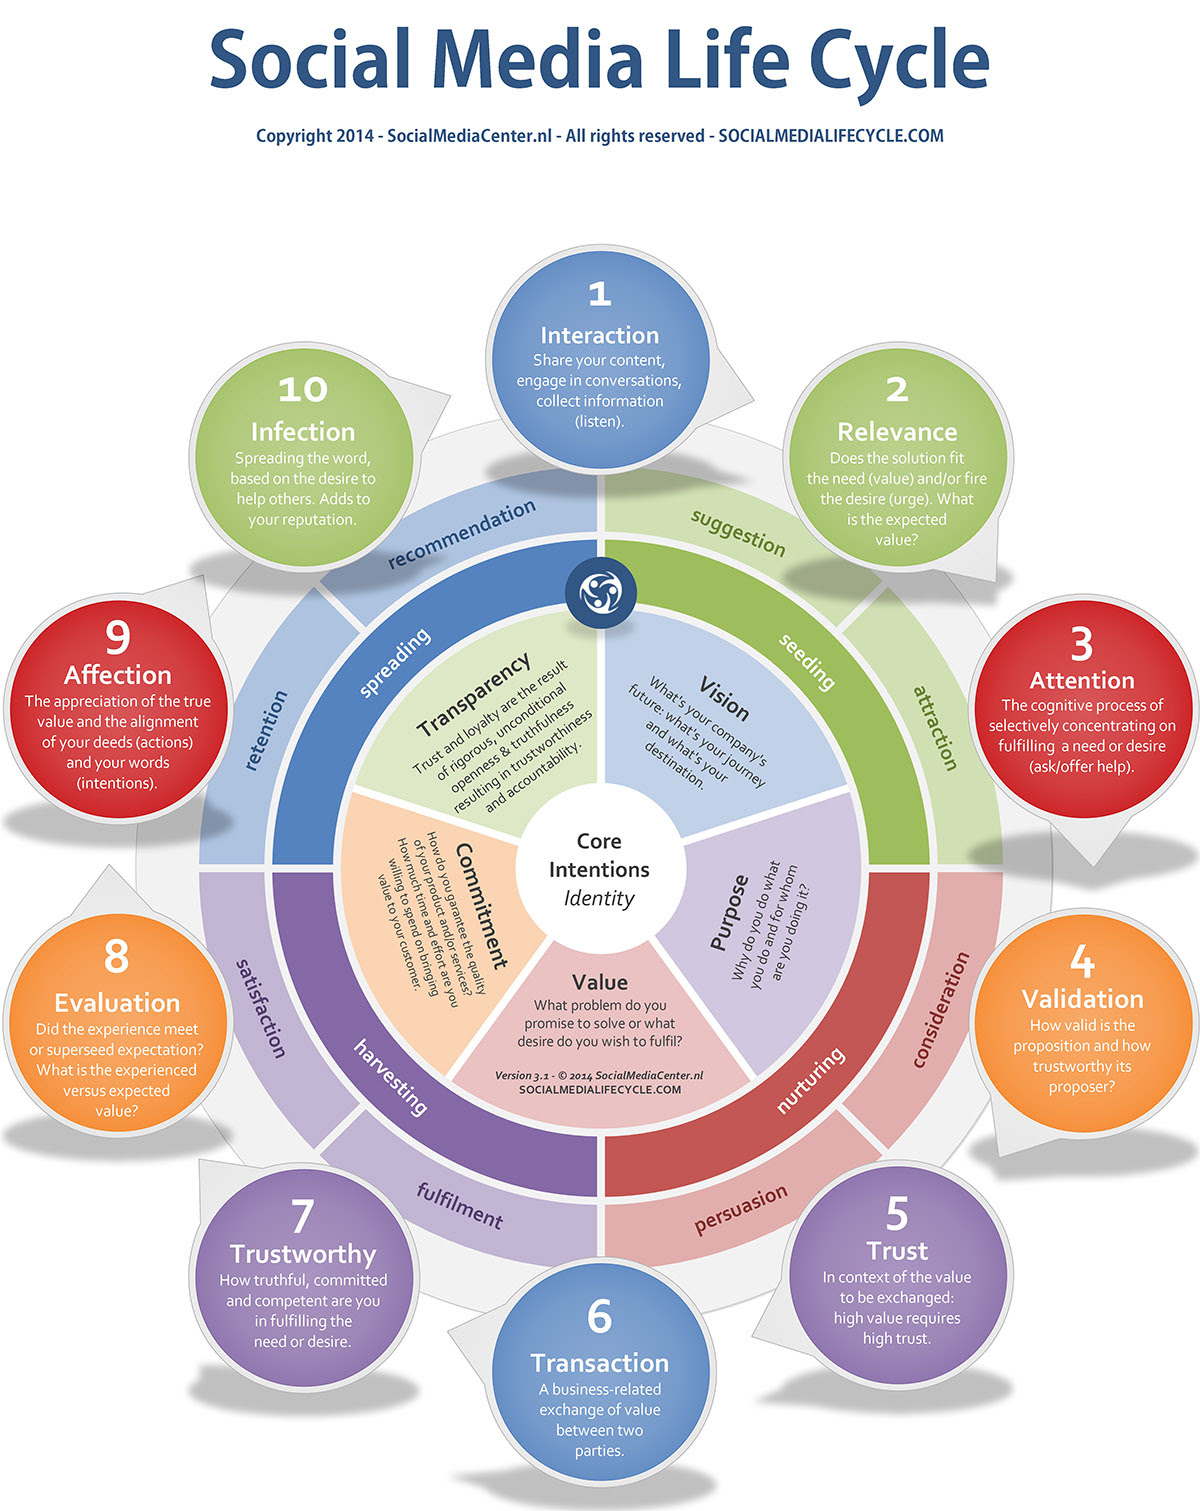 The Social Media Life Cycle - infographic - how it works for businesses